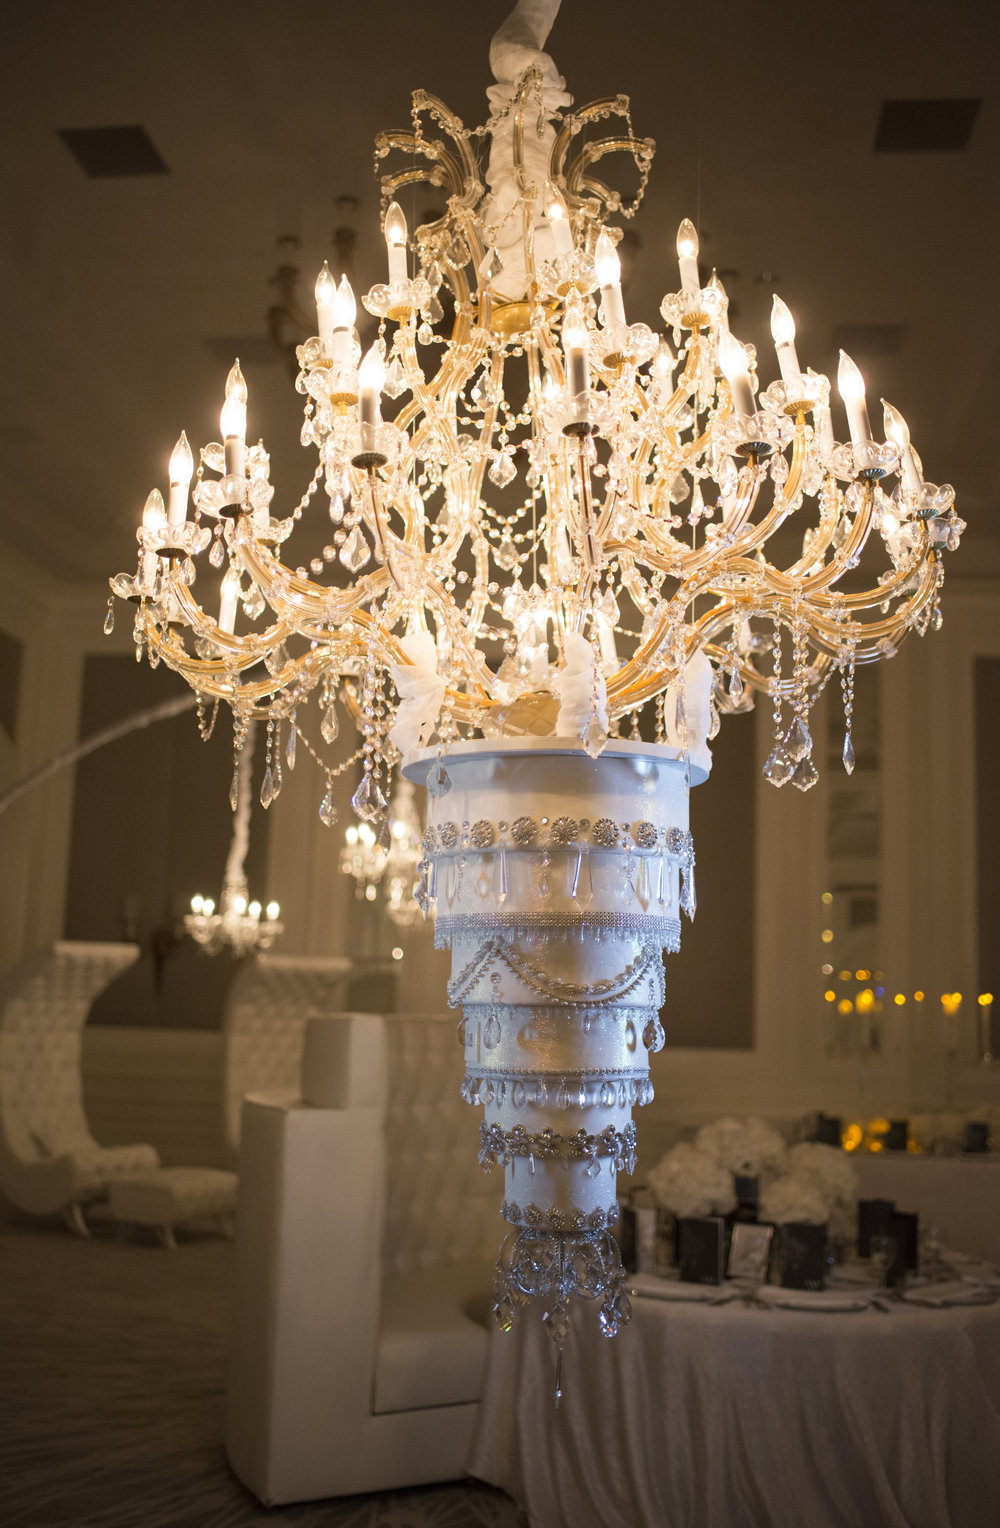 Upside down wedding cake hanging by a chandelier. Las Vegas Wedding Planner Andrea Eppolito. Cake by Four Seasons. Photo by AltF.